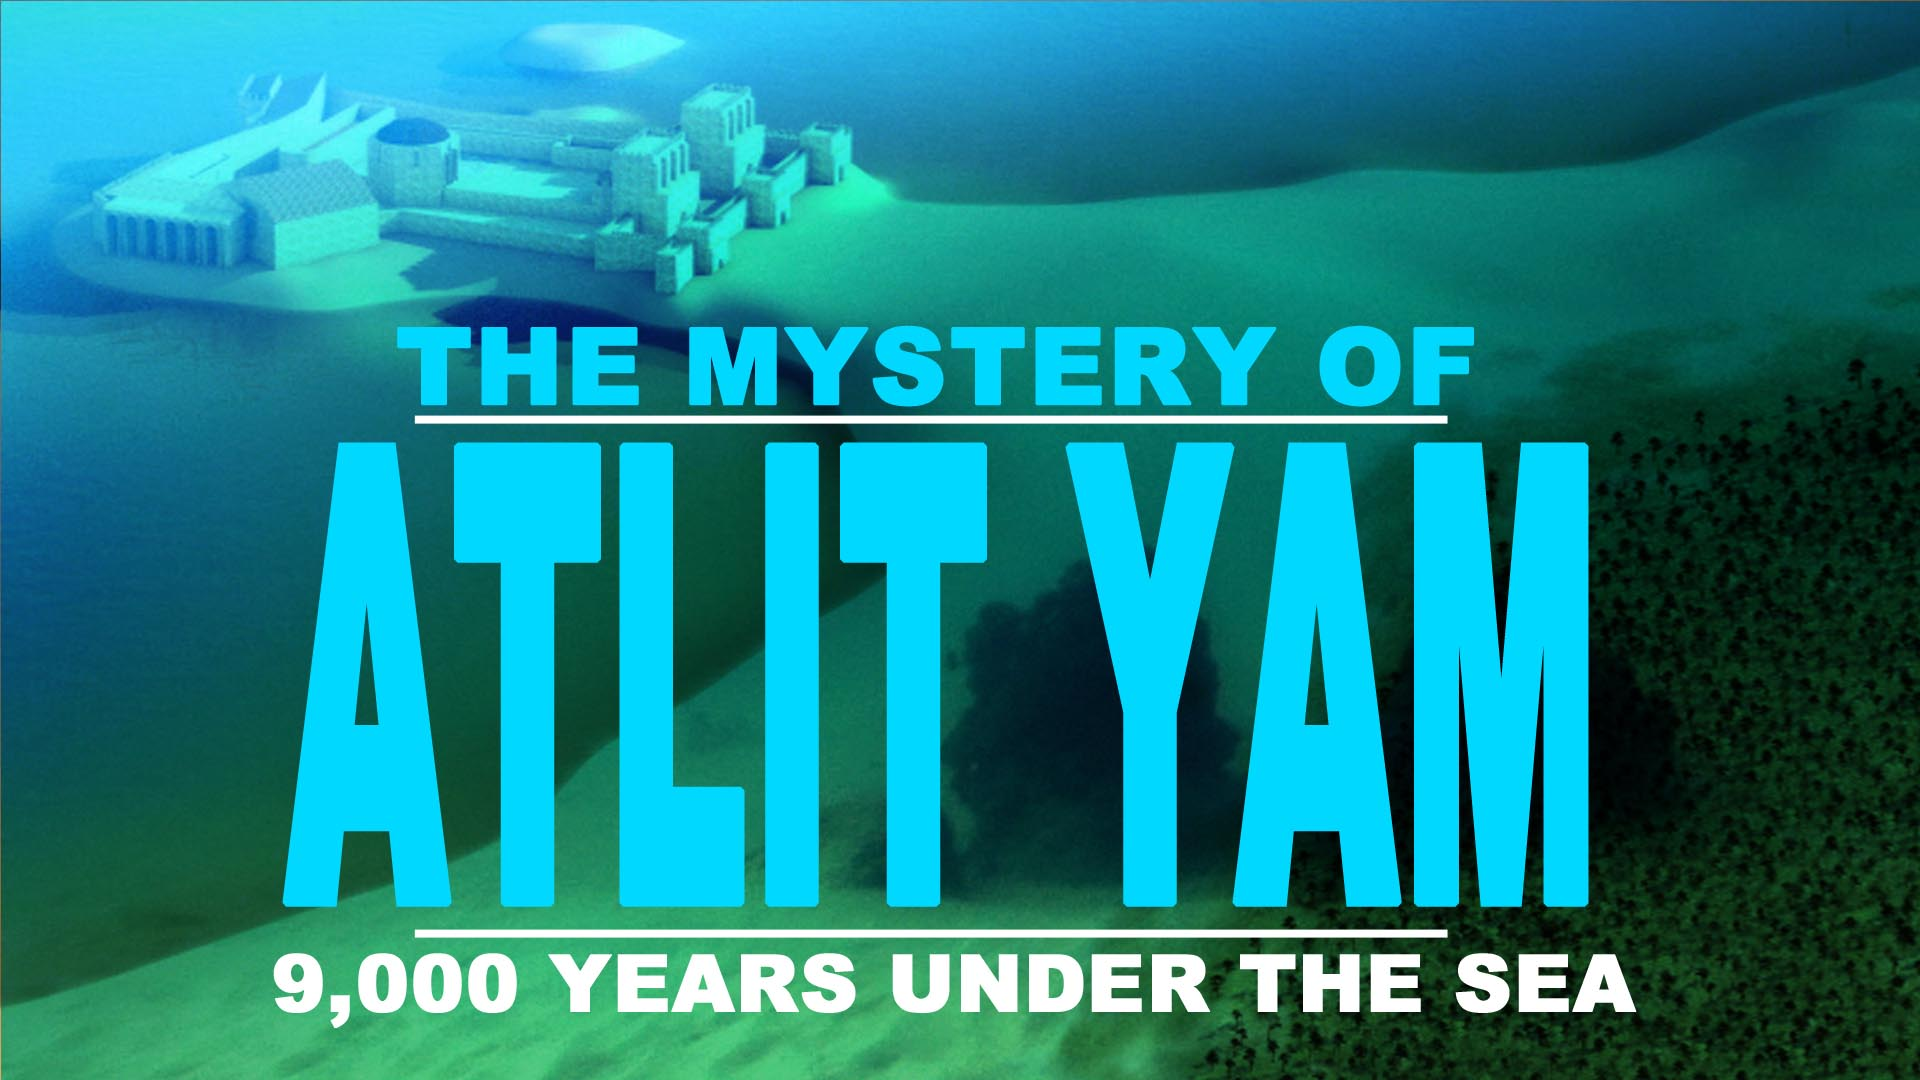 The Mystery of Atlit-Yam